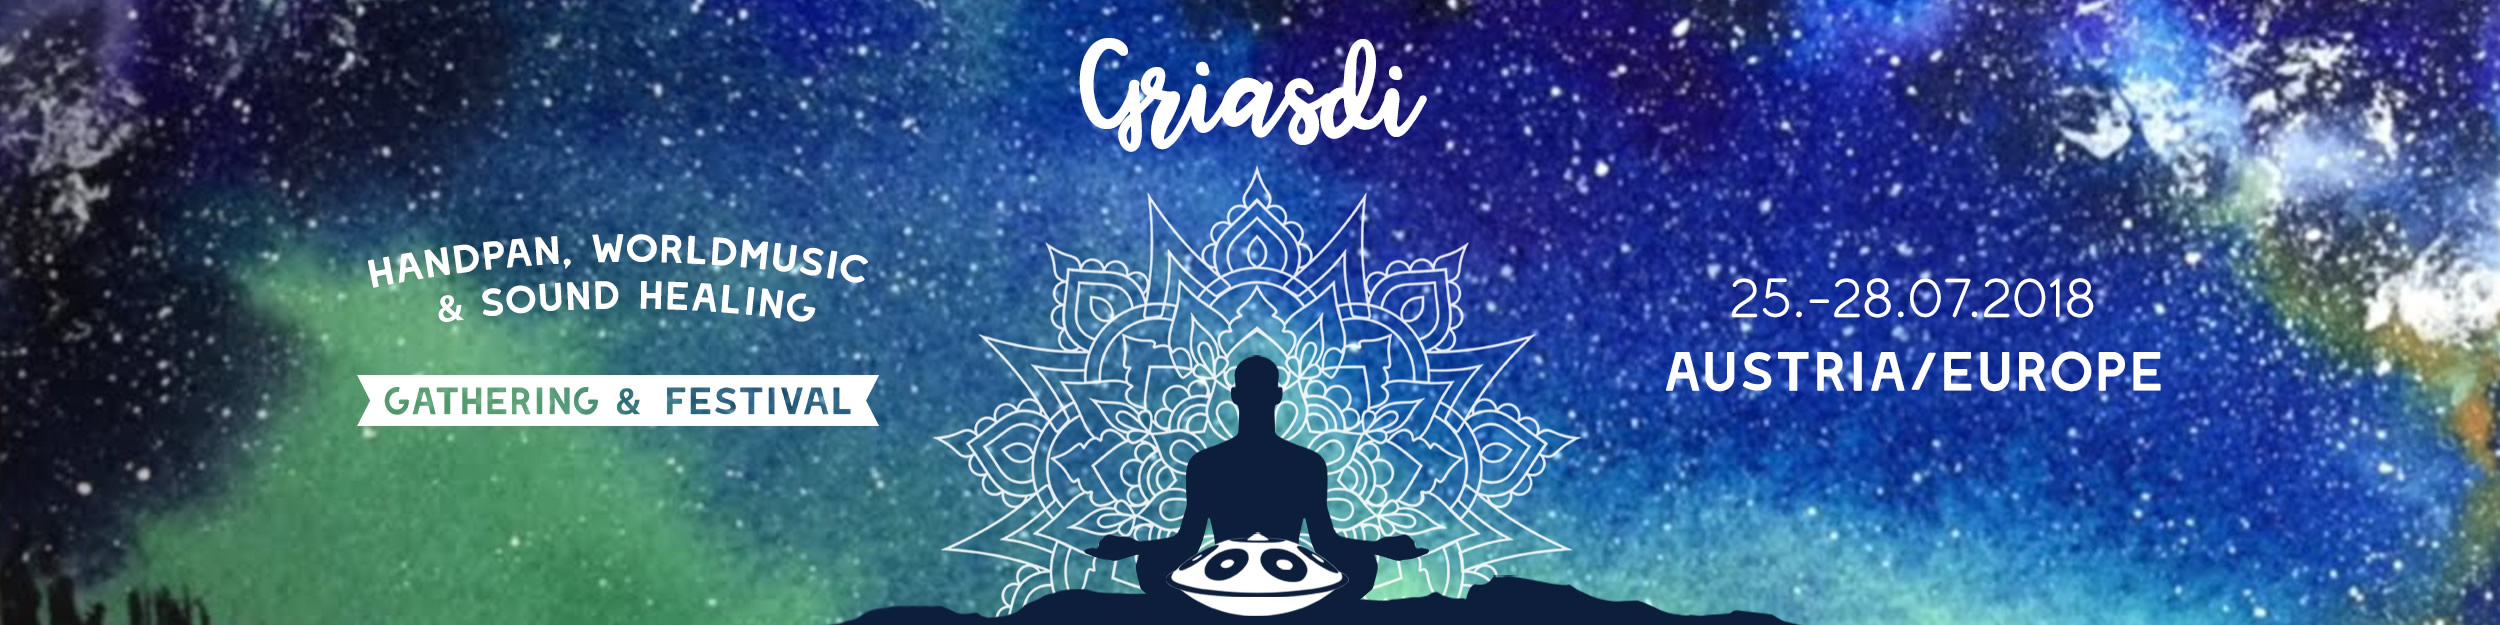 GRIASDI 2018 – Handpan & World Music Festival